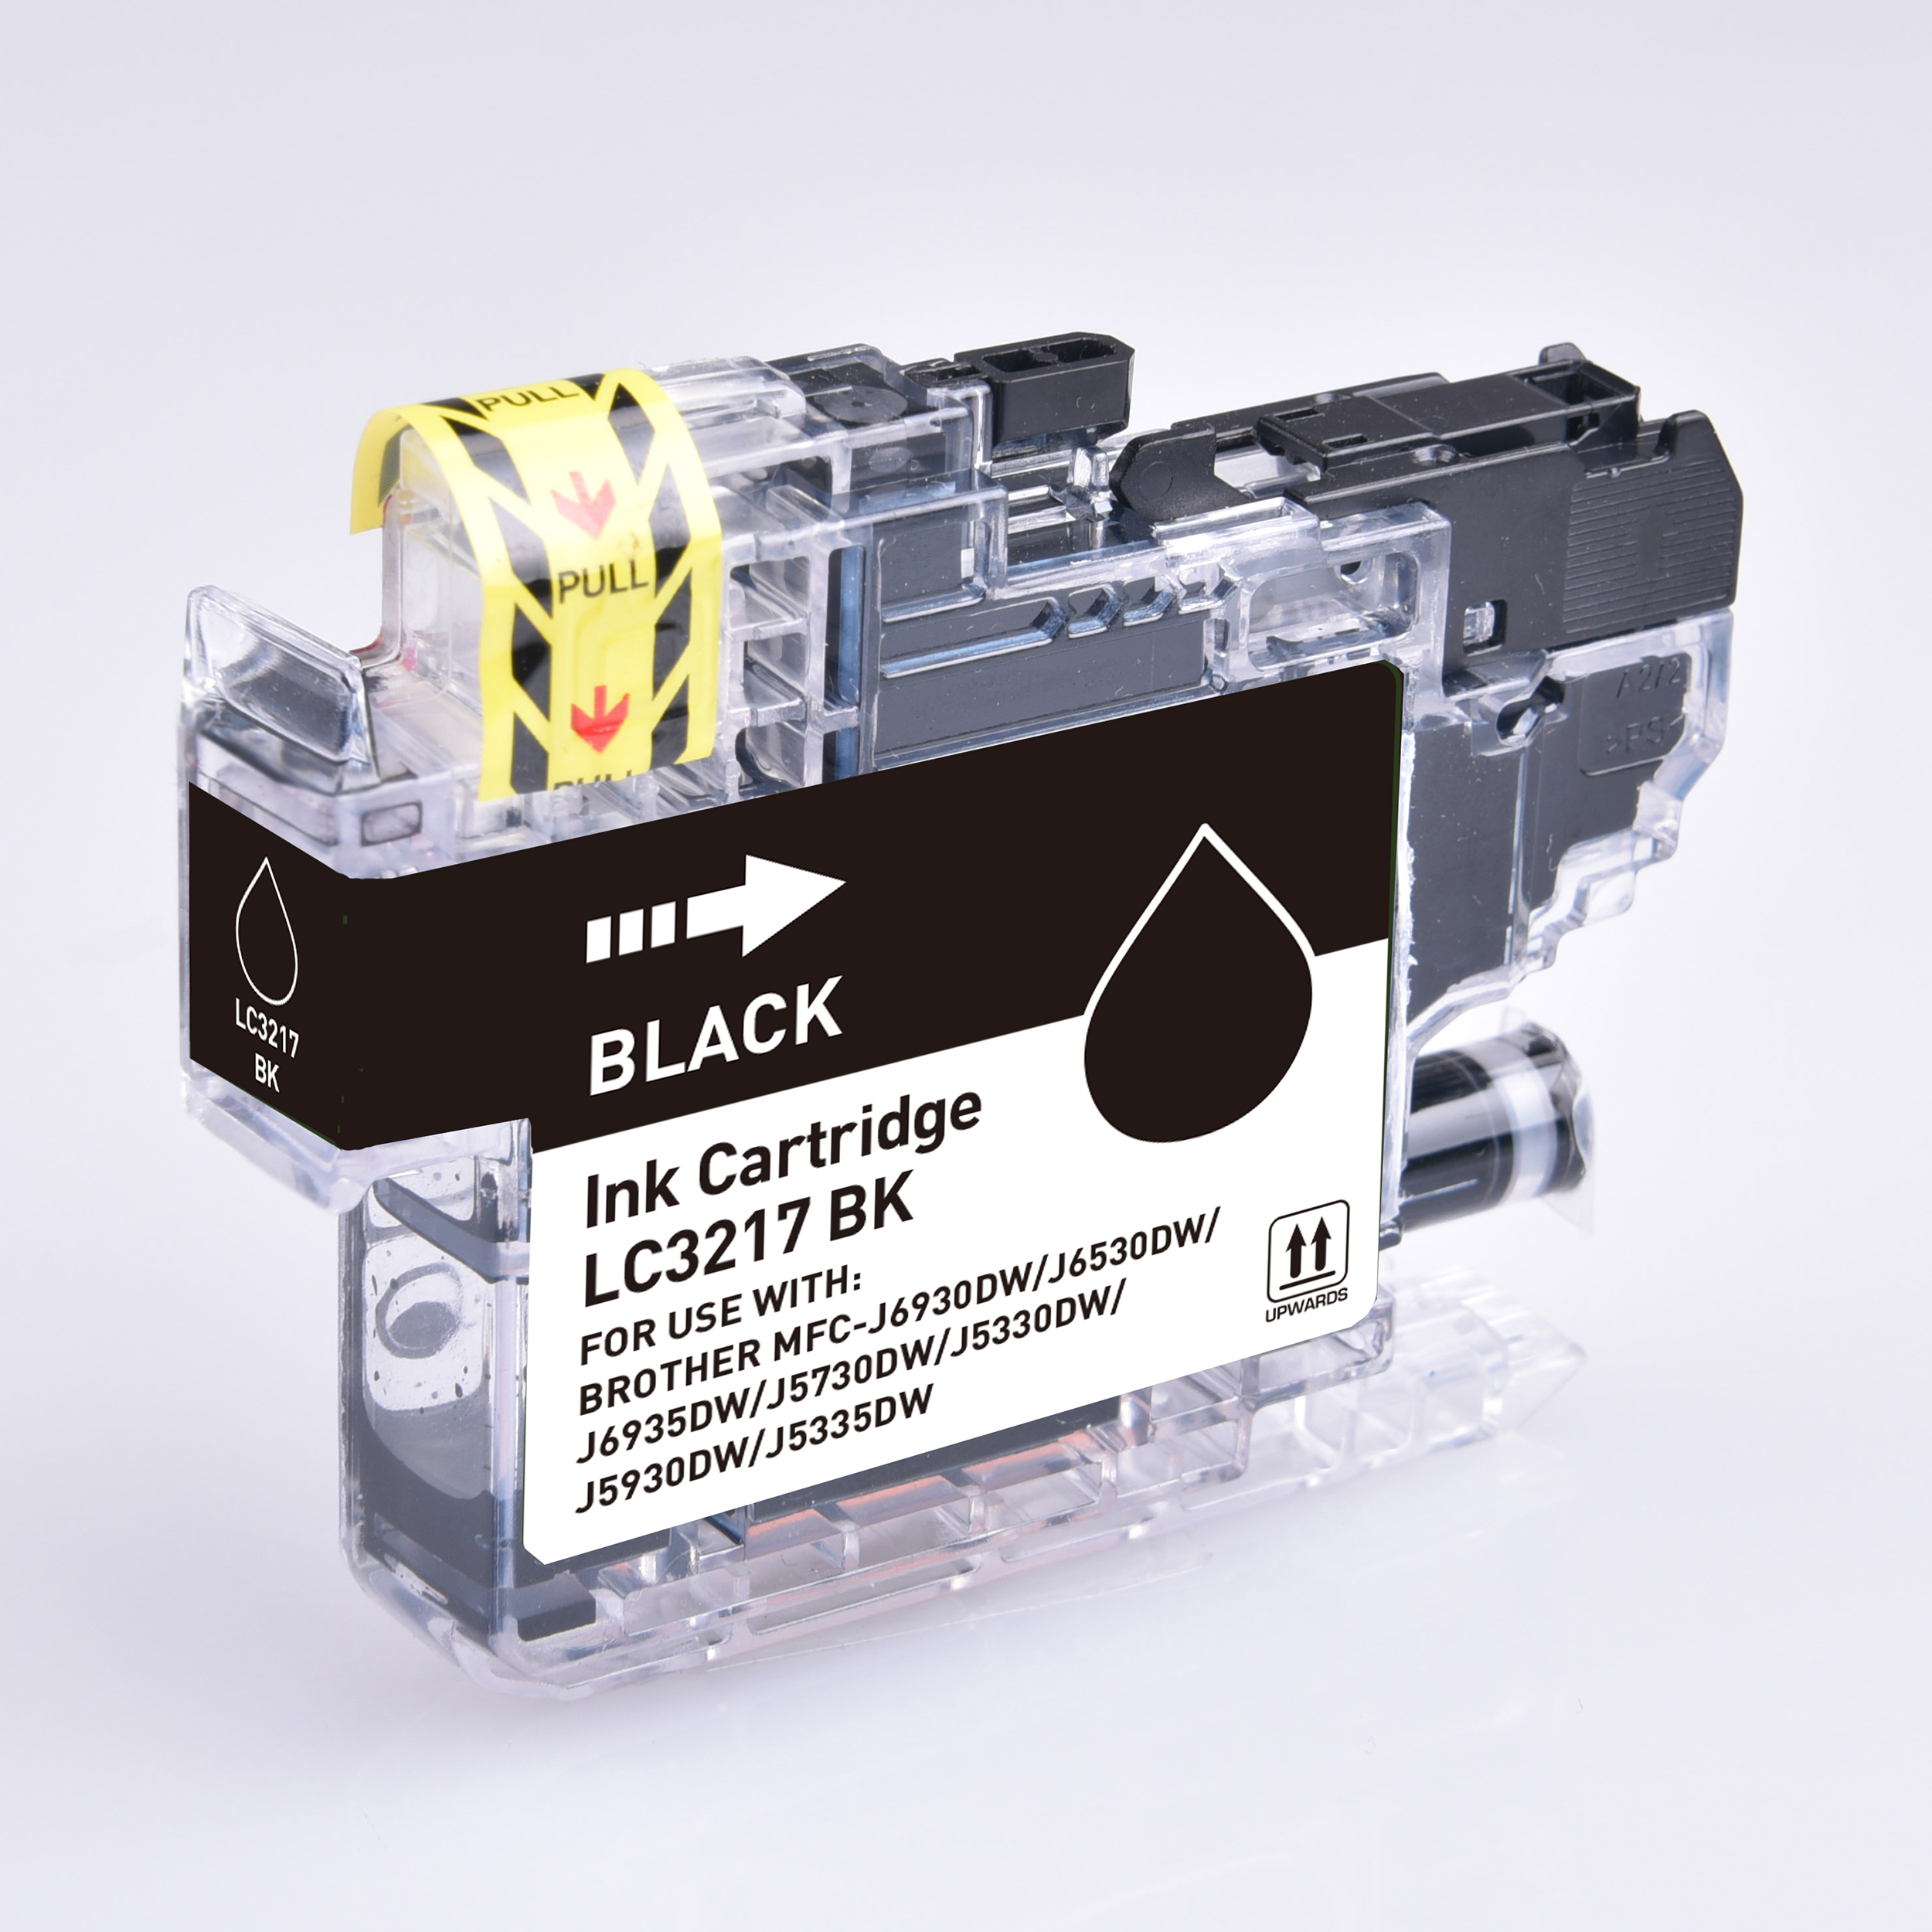 Ink cartridges 5 Star Value Remanufactured Inkjet Cartridge Page Life 550pp Black Brother LC3217BK Alternative